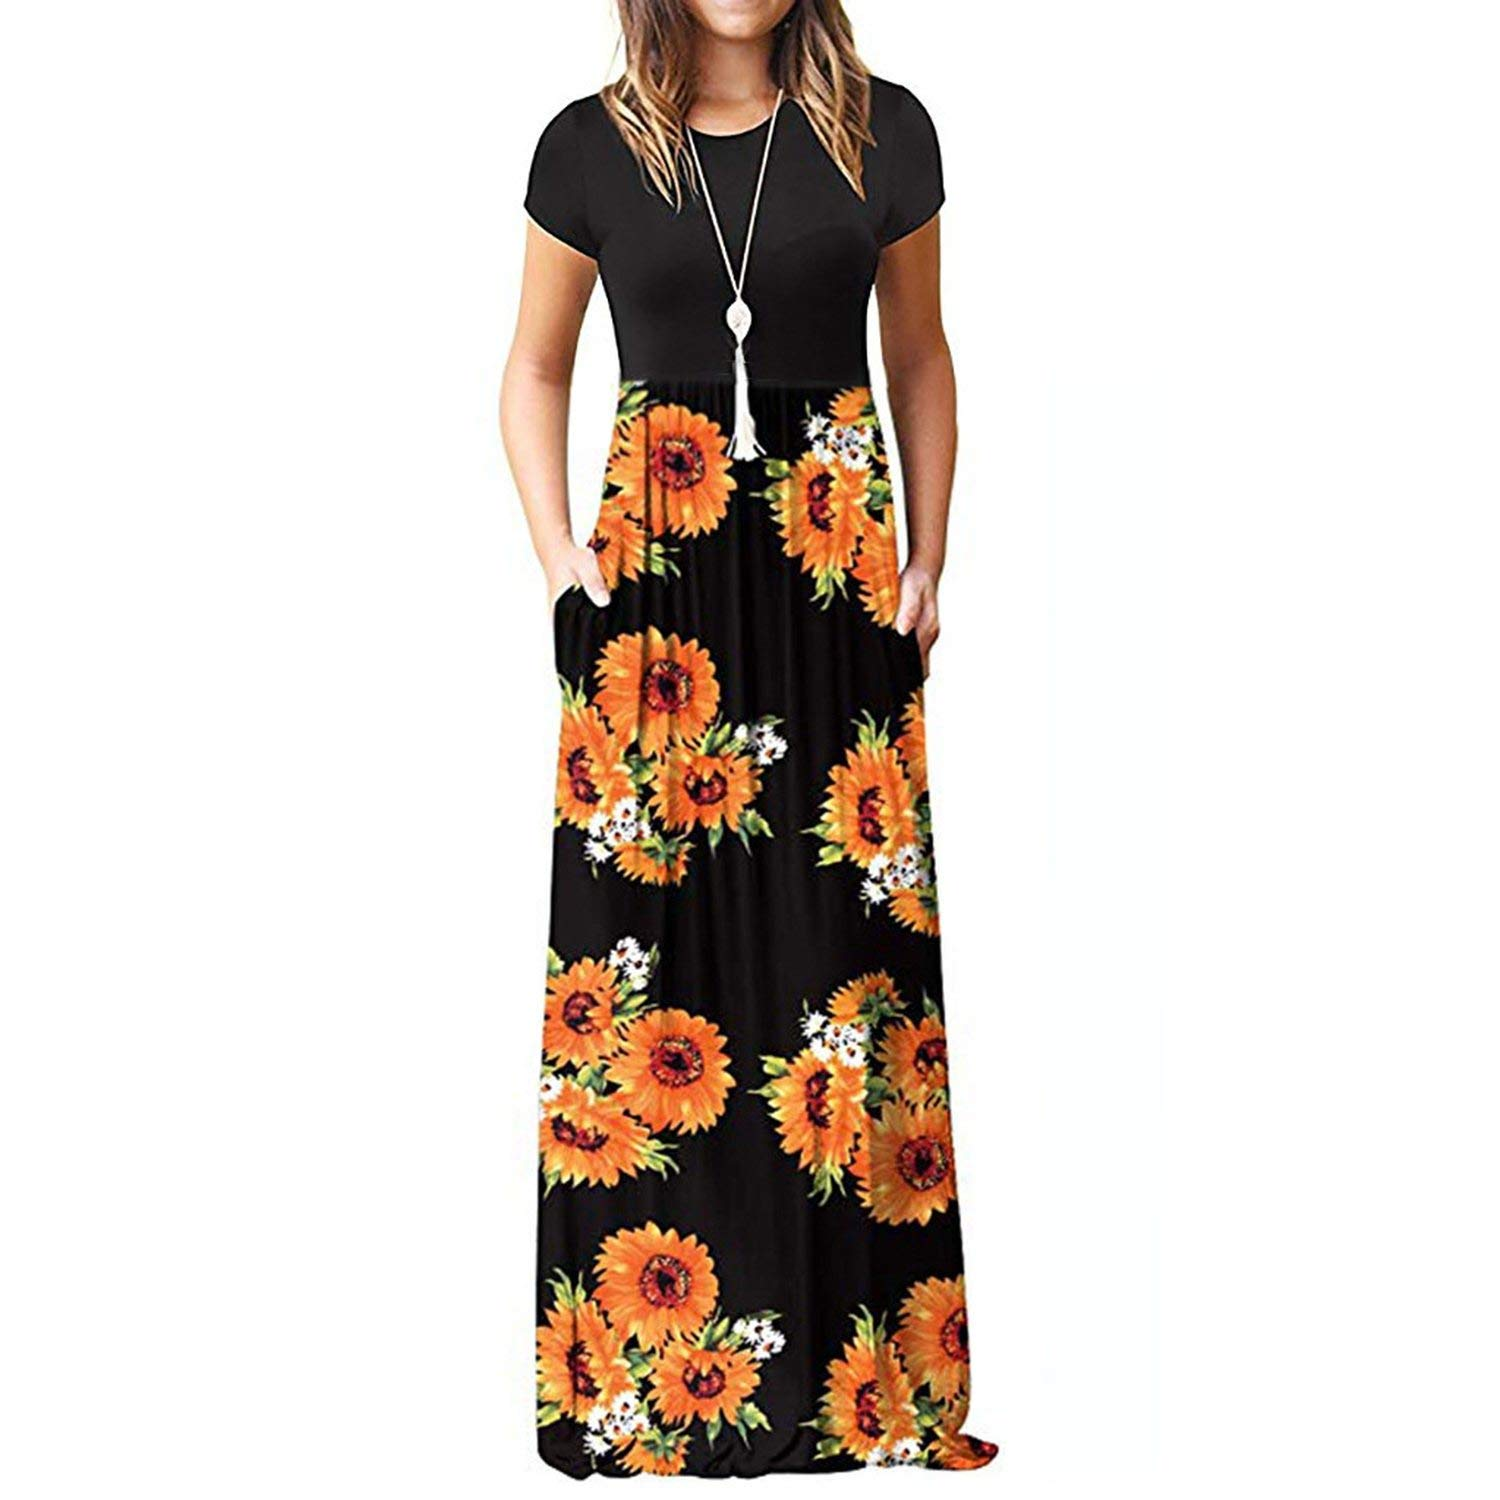 color 2019 Fashion Sexy Elegant Vintage Summer Dress Women's Casual Sleeve ONeck Flower Print Maxi Tank Long Dress